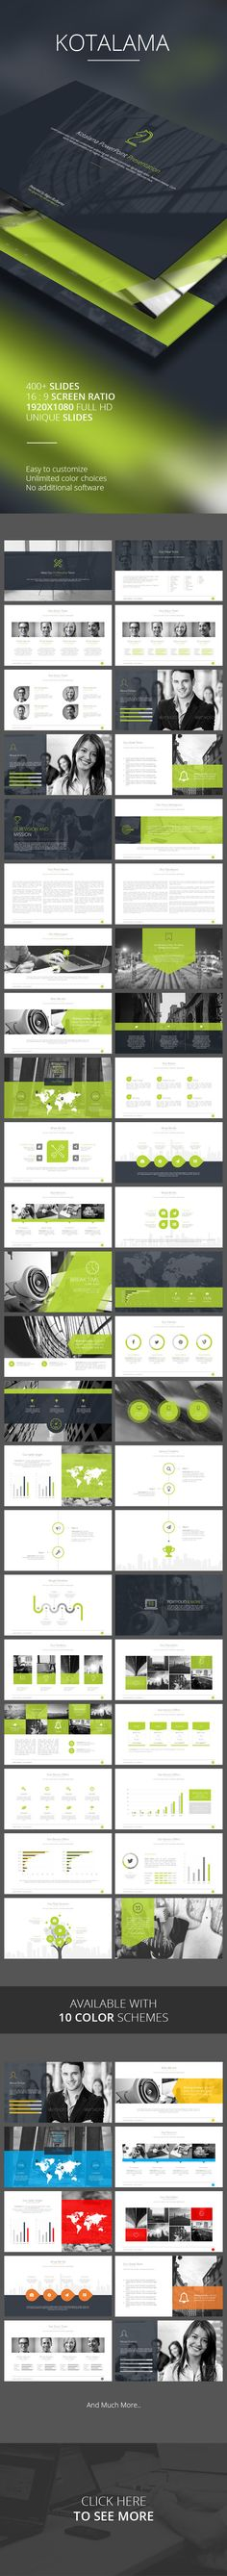 Kotalama PowerPoint Template - PowerPoint Templates Presentation Templates